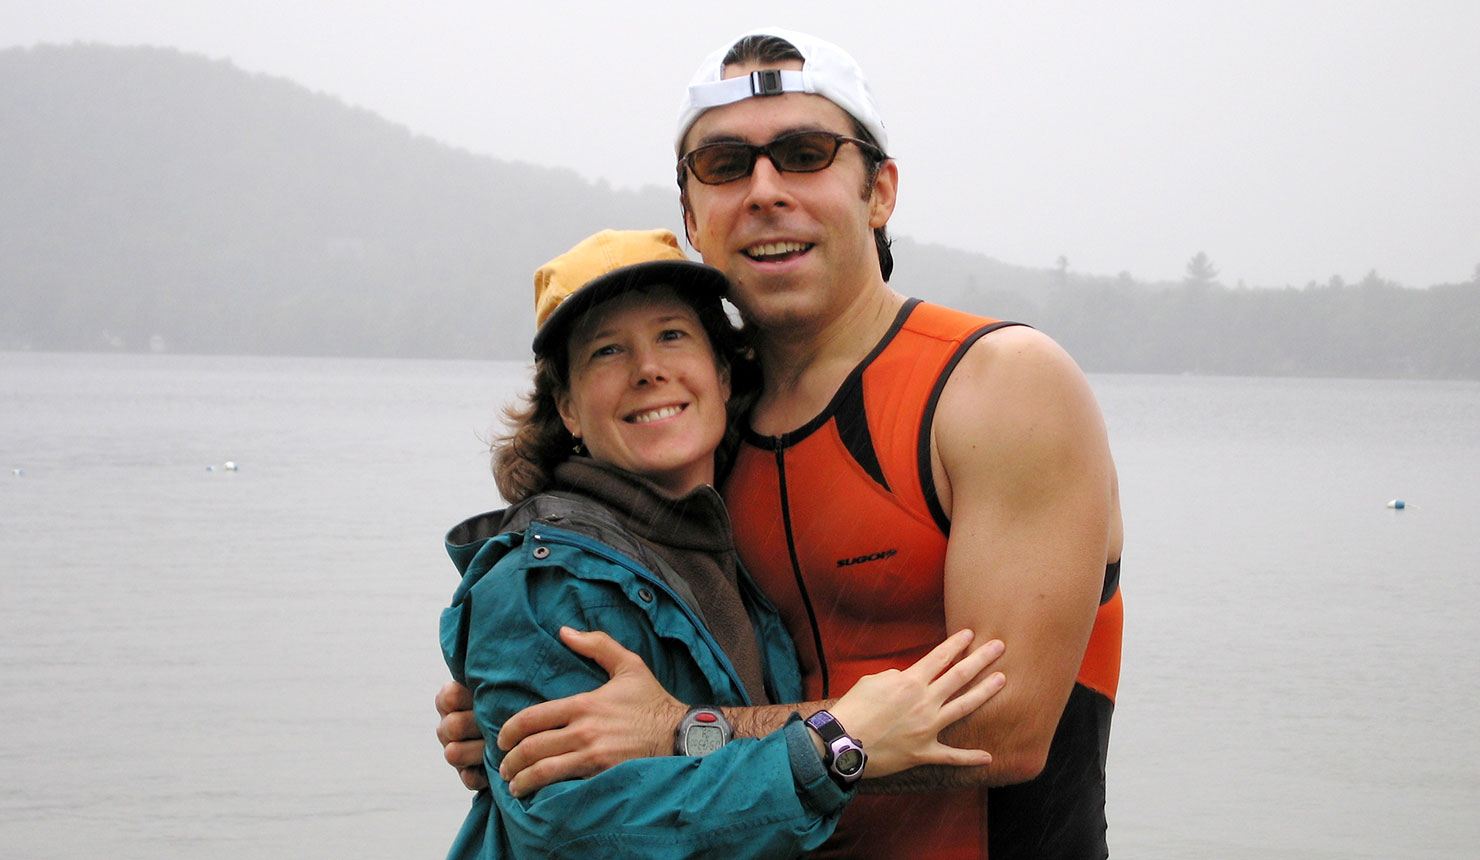 Michael Gleeson MD-PhD '10, once disabled by reactive arthritis, regained his health with the right medical care and the help of his wife, Kirsten (left). His experience inspired him to become a physician-researcher.